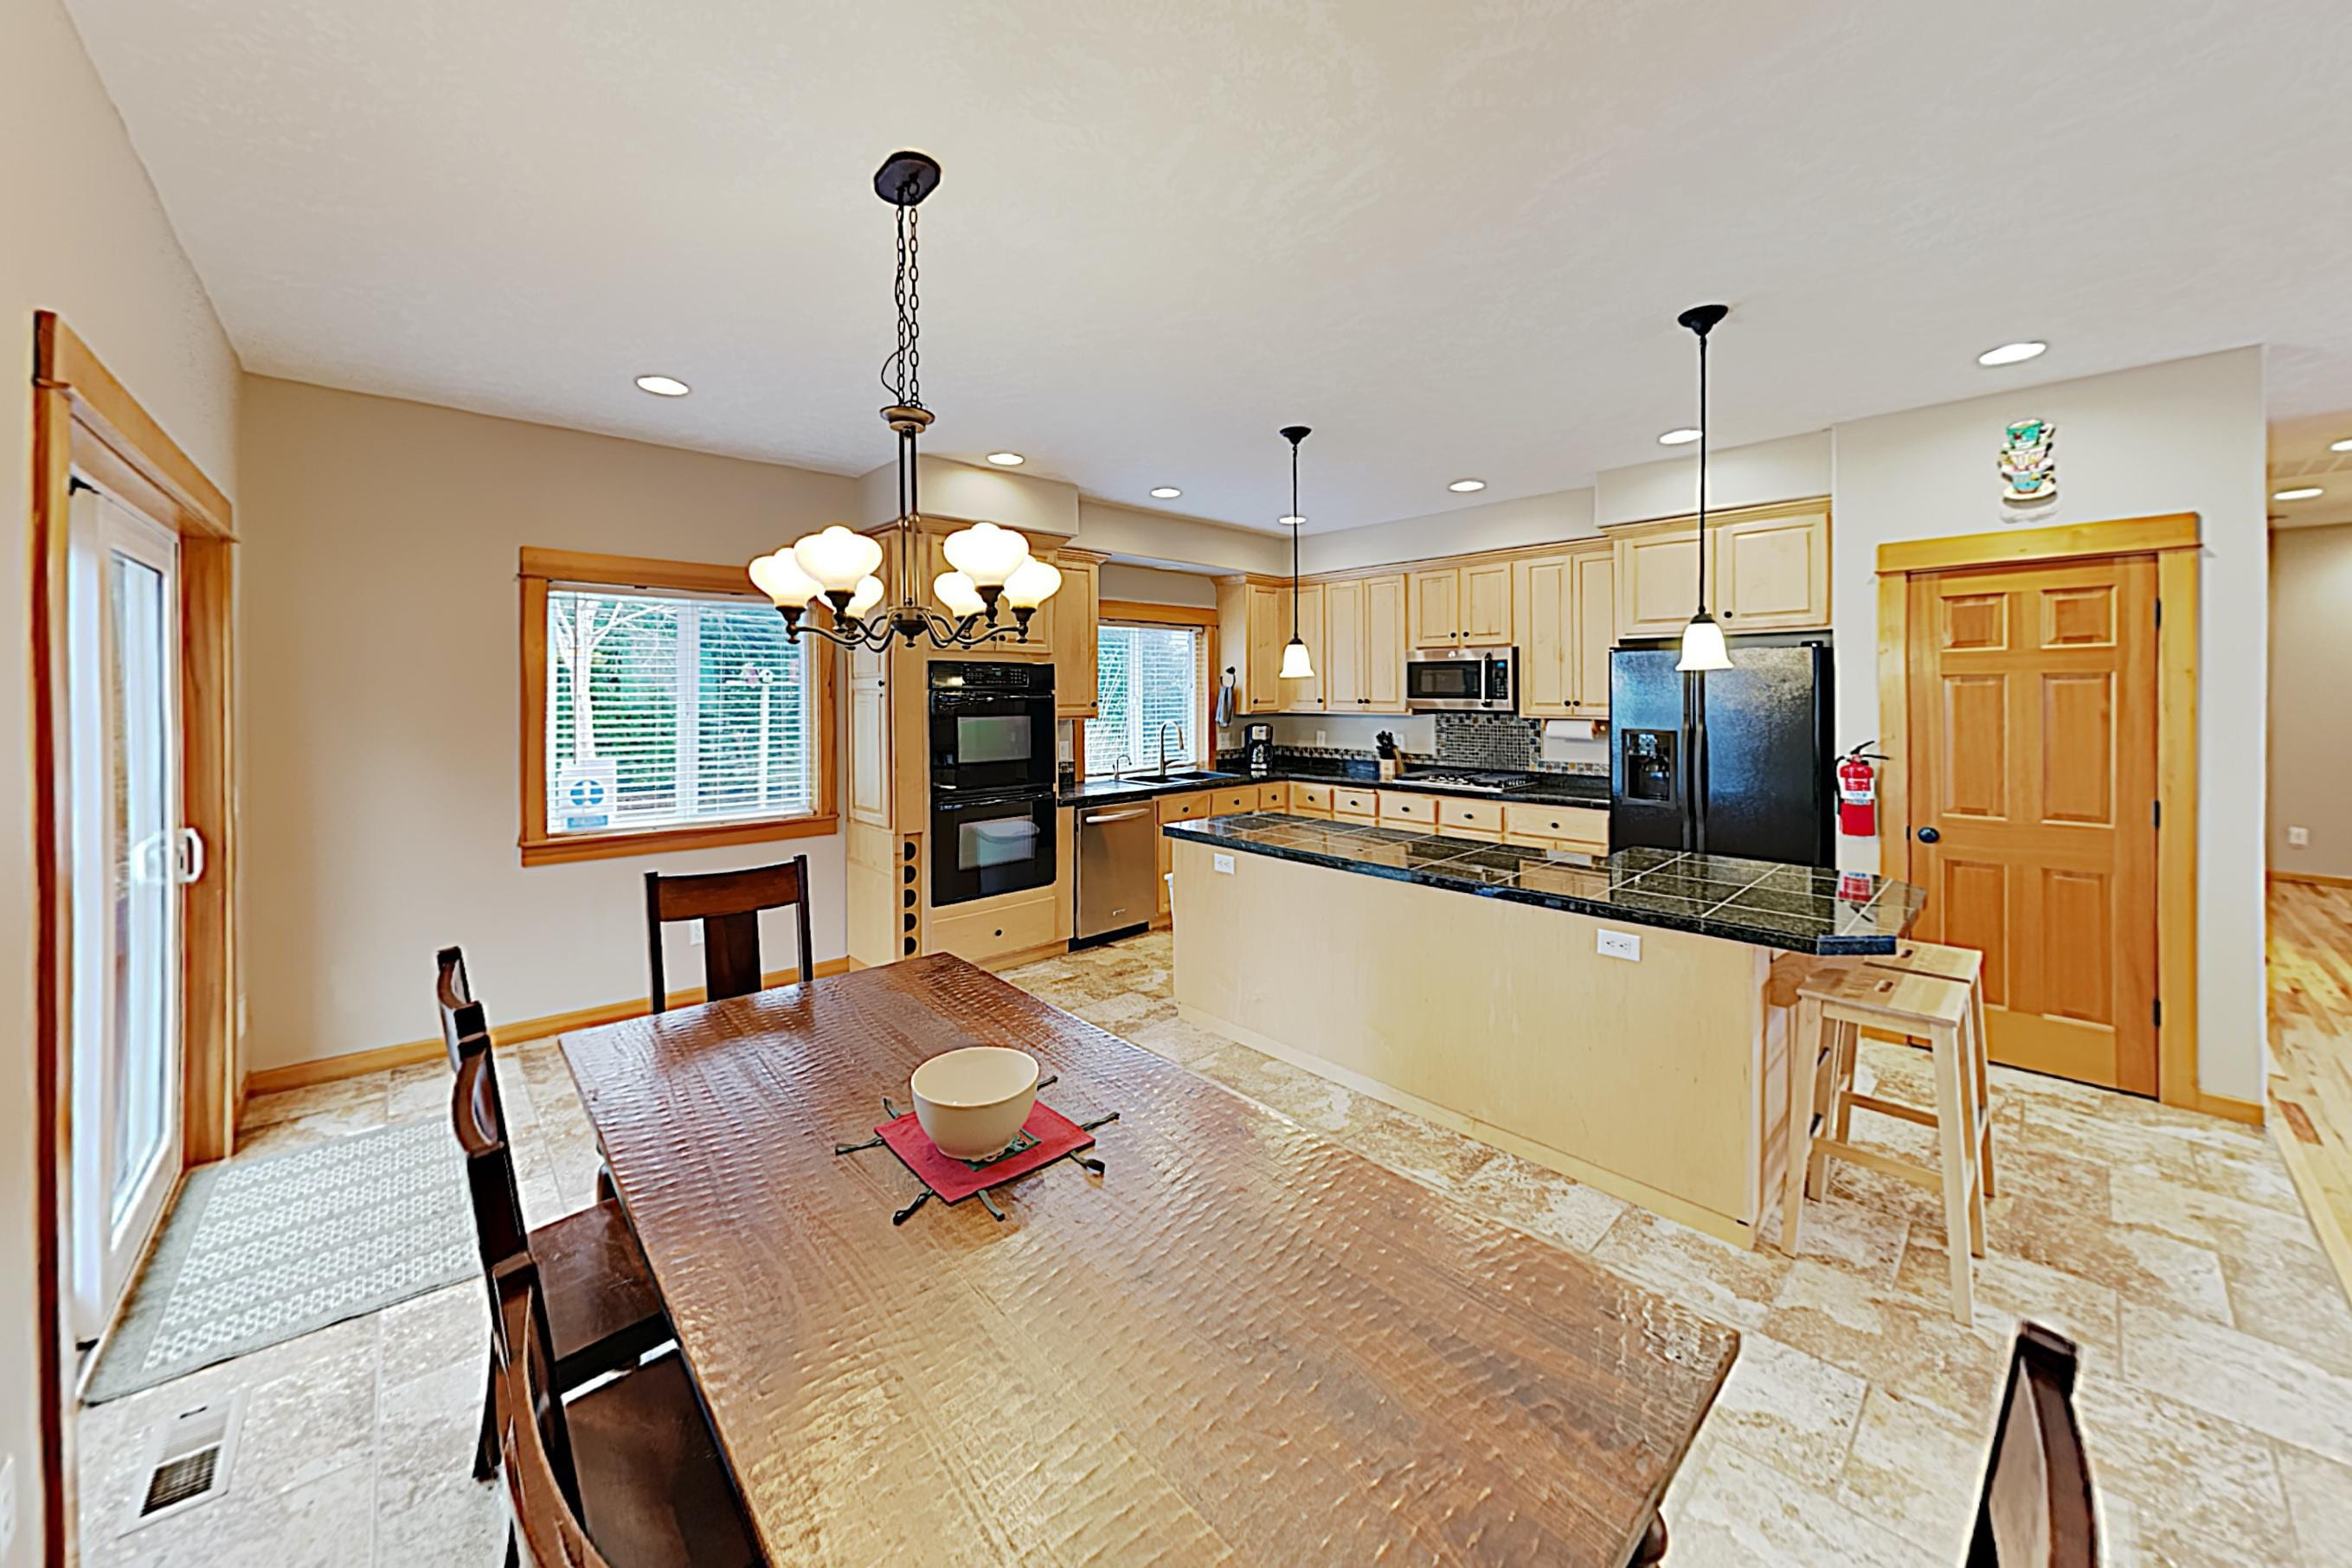 The open kitchen and dining space offers a great flow for entertaining.